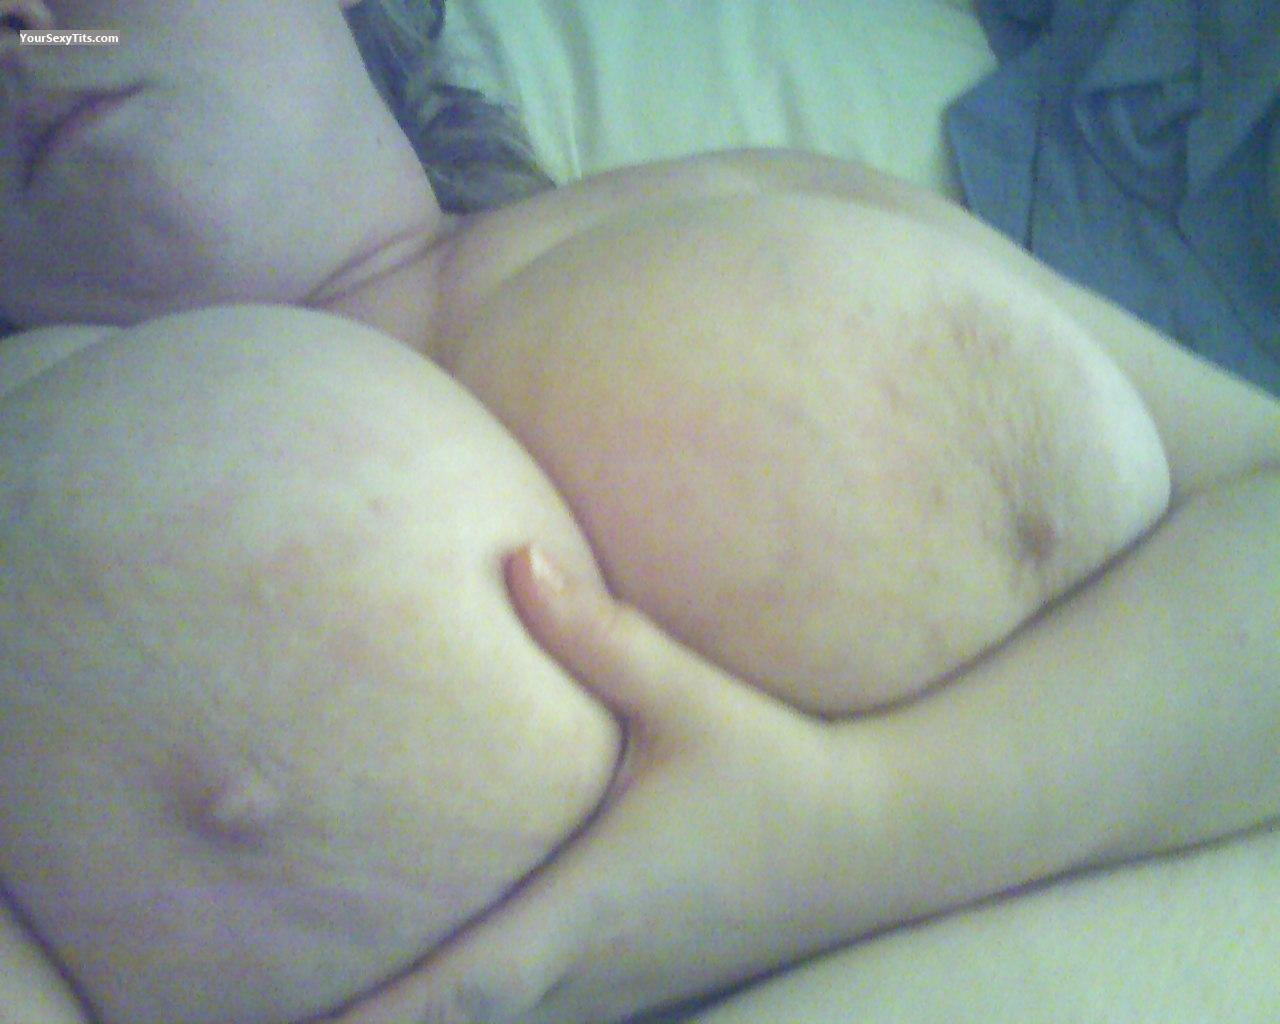 My Very big Tits Selfie by Wendy